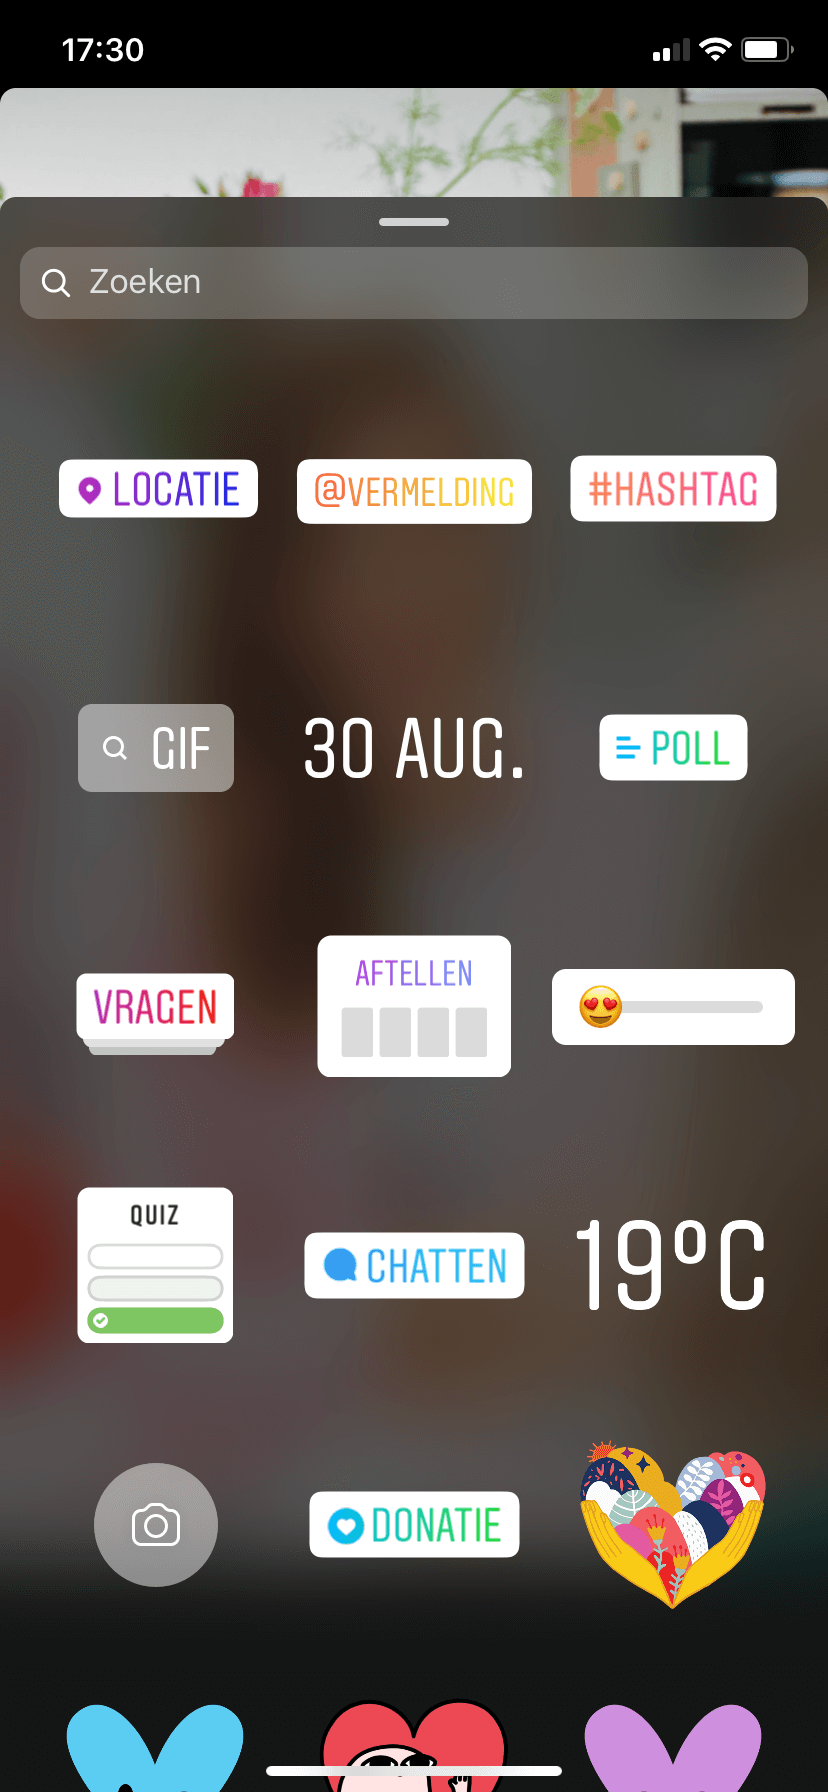 Instagram stories maken